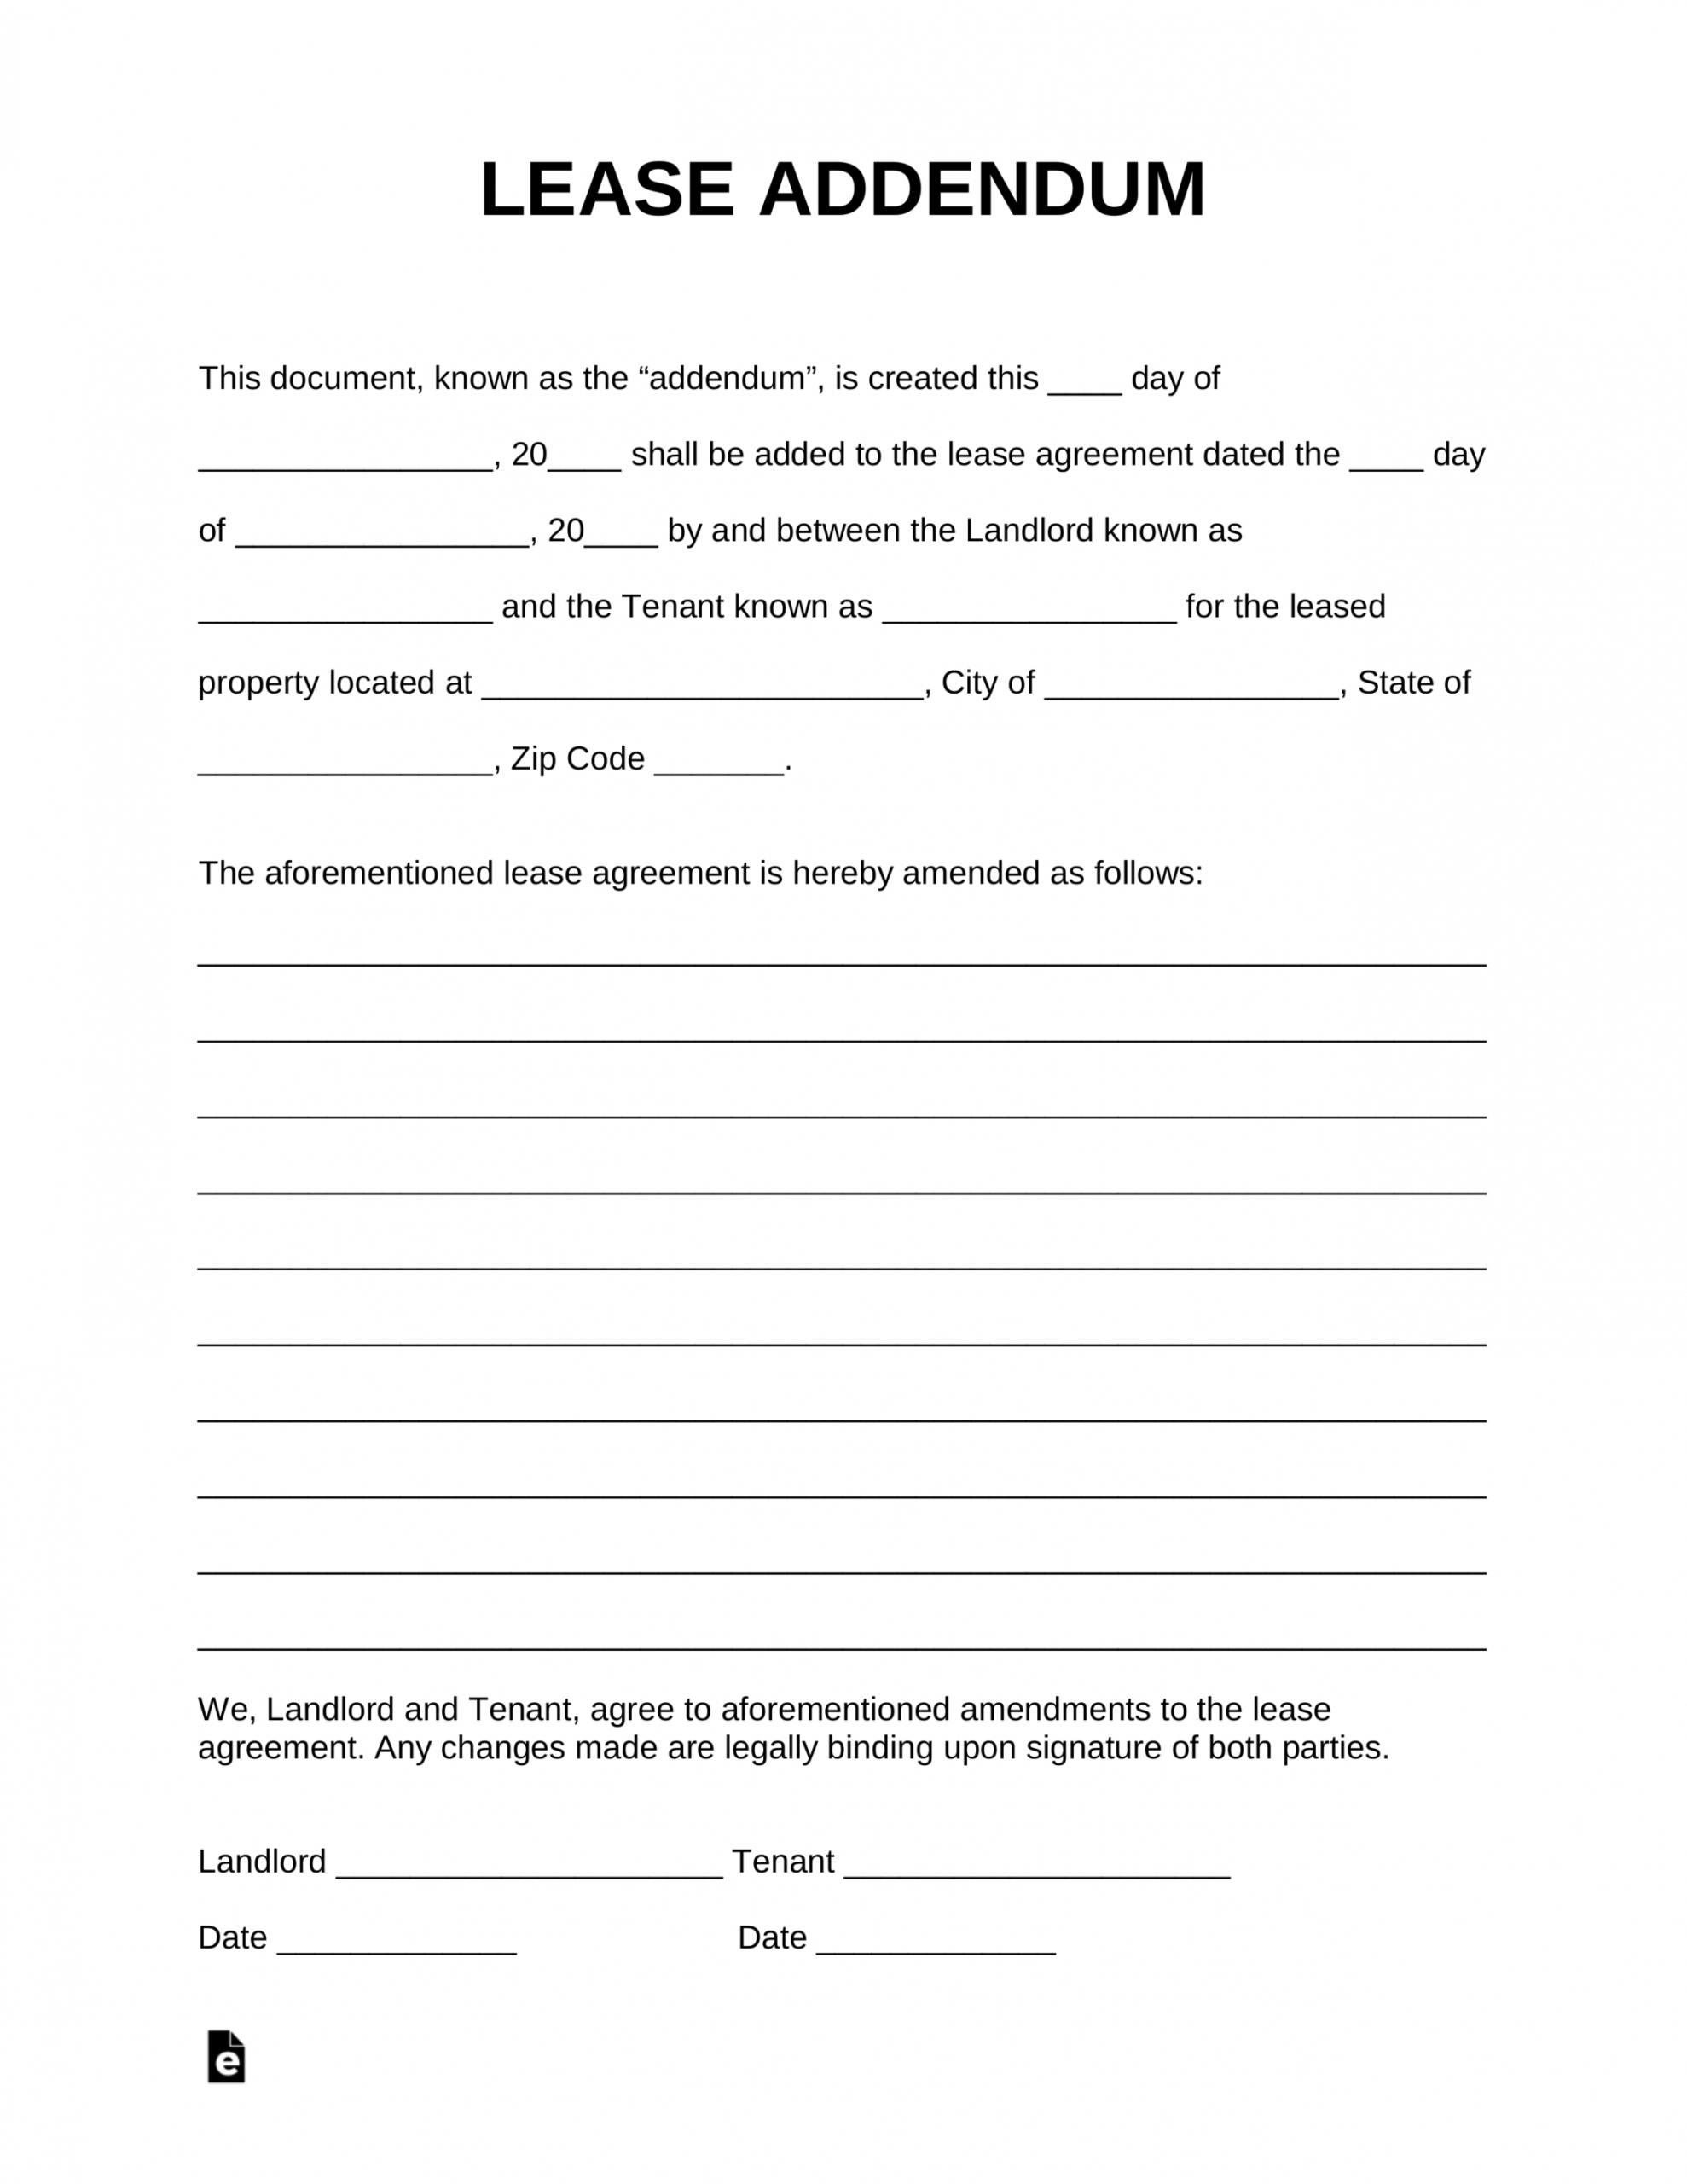 Explore Our Sample Of Addendum To Lease Agreement Template Lease Agreement Rental Agreement Templates Purchase Agreement